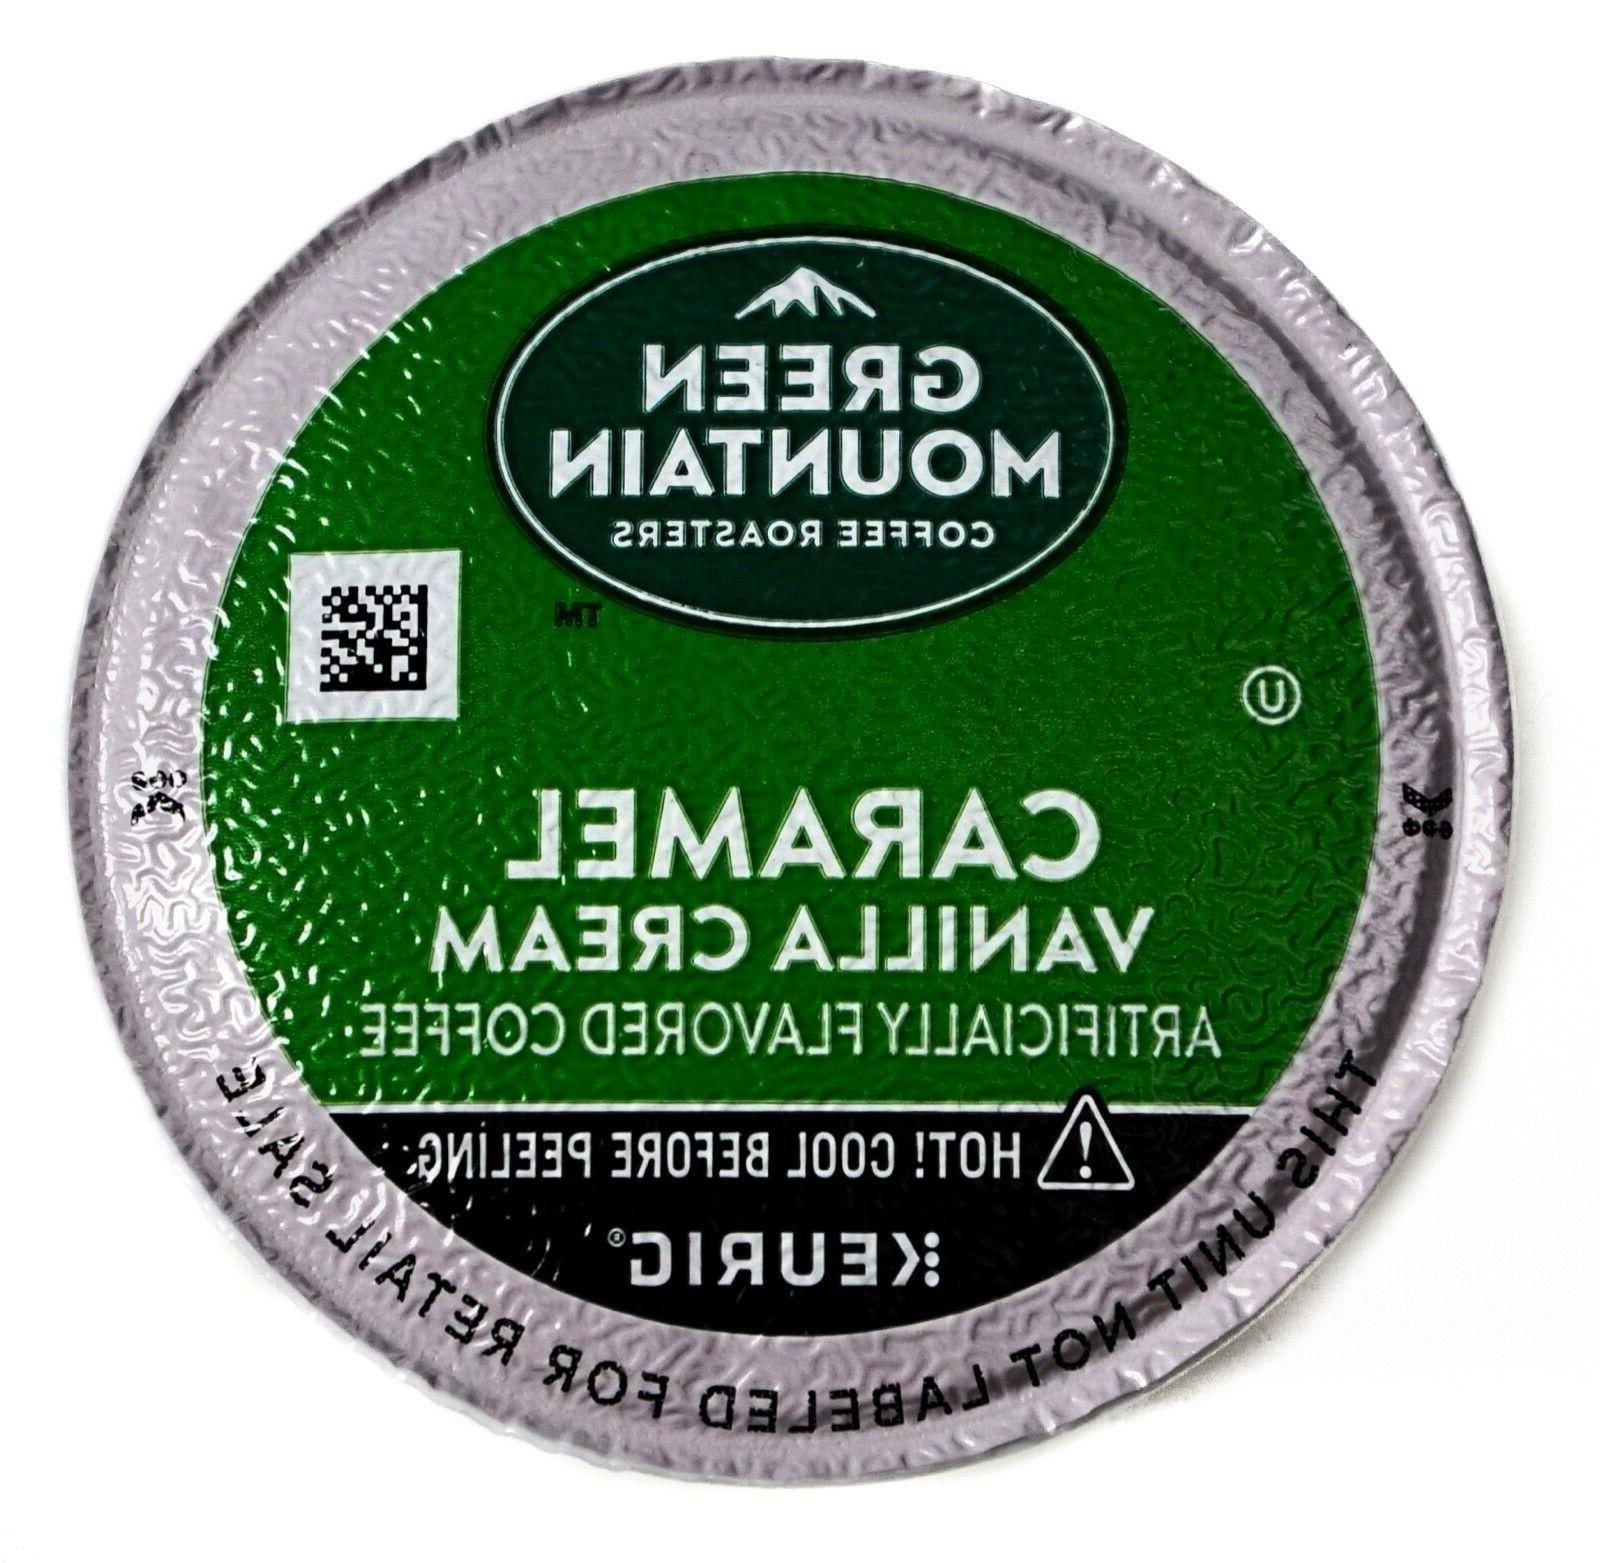 Green Mountain Cream 100% Keurig K-Cup Pods